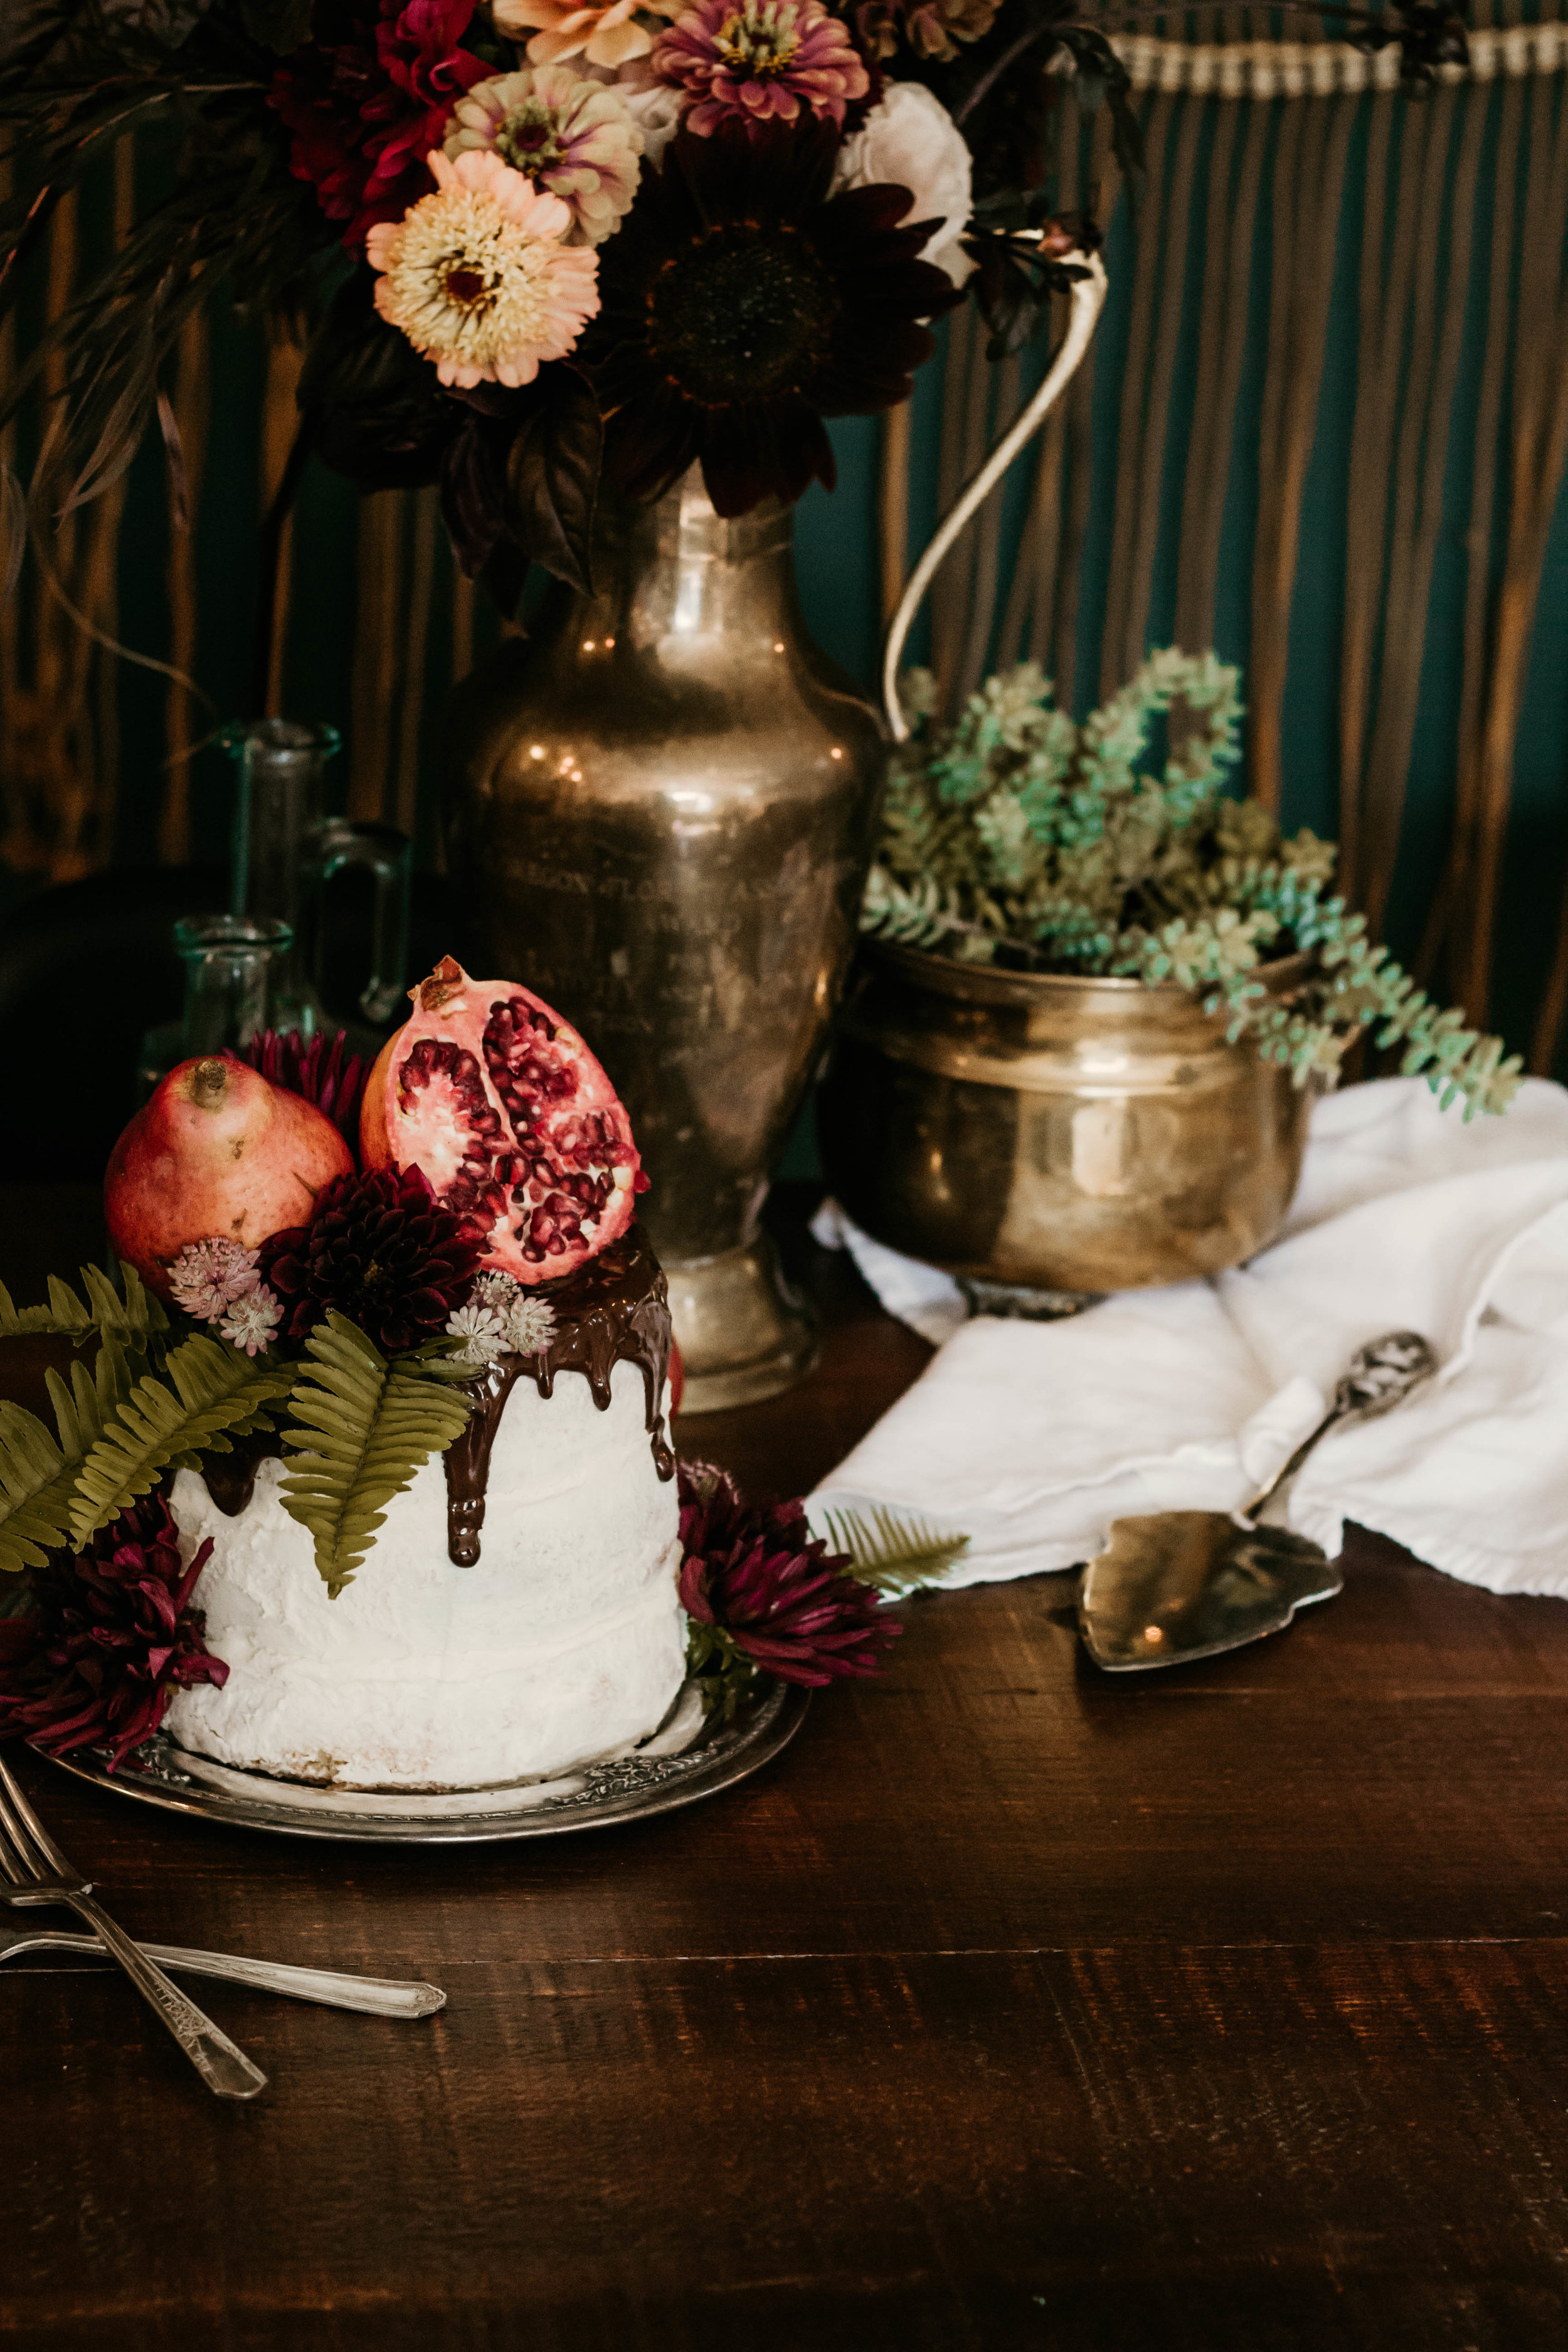 Styling by Riverwood Gardens (@riverwoodgardens // riverwoodgardens.ca), Rosielle & Co. (rosielleandco // rosielleandco.com) and Carawayco (@carawayco).